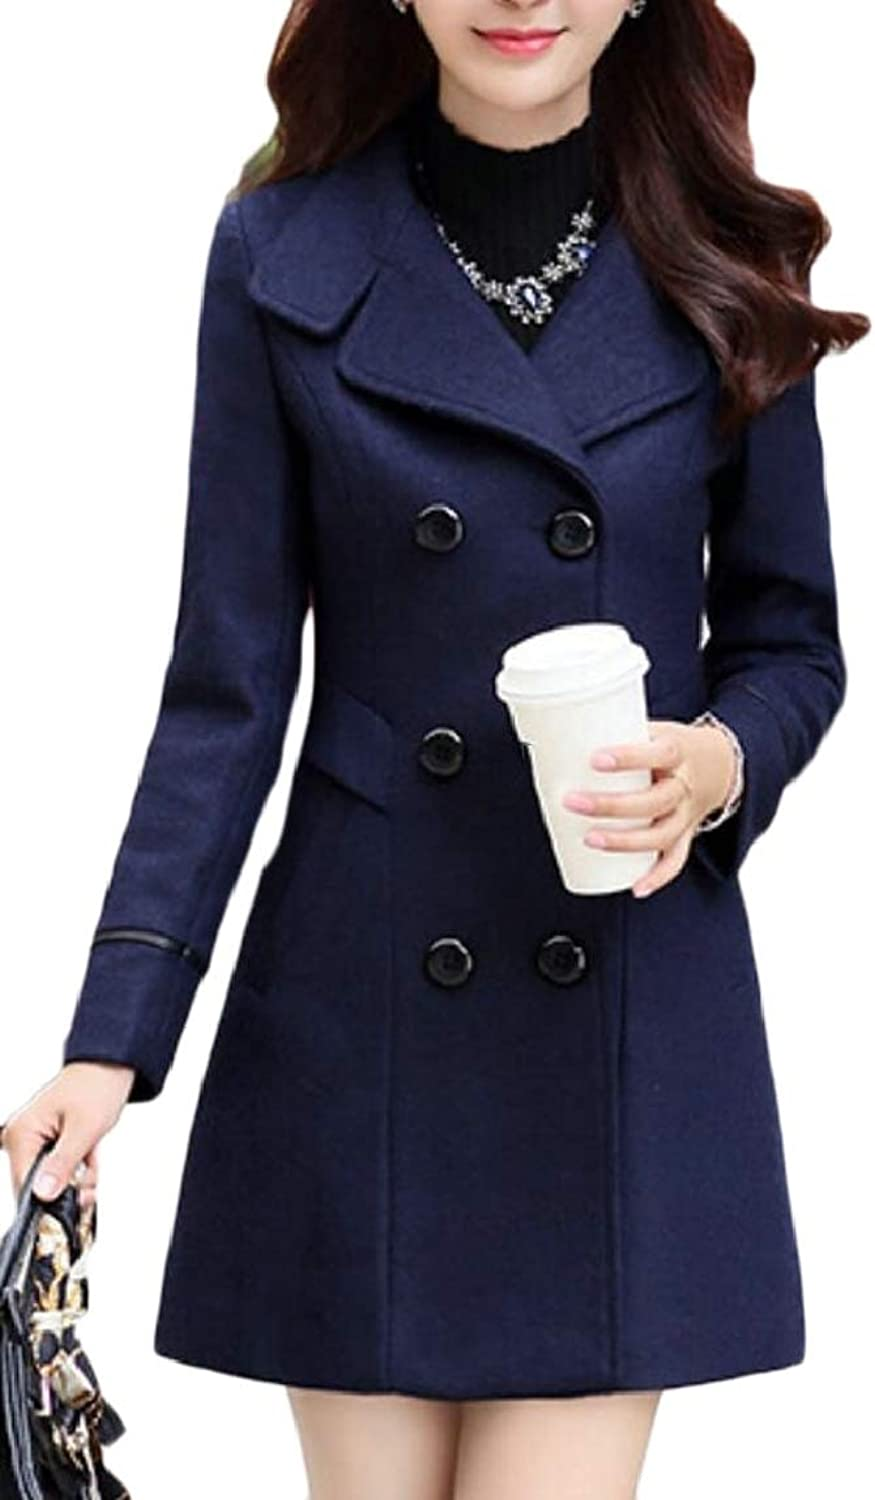 LKCENCA Women Overcoat Double Breasted Casual Pea Slim Fit Wool Blend Trench Coat